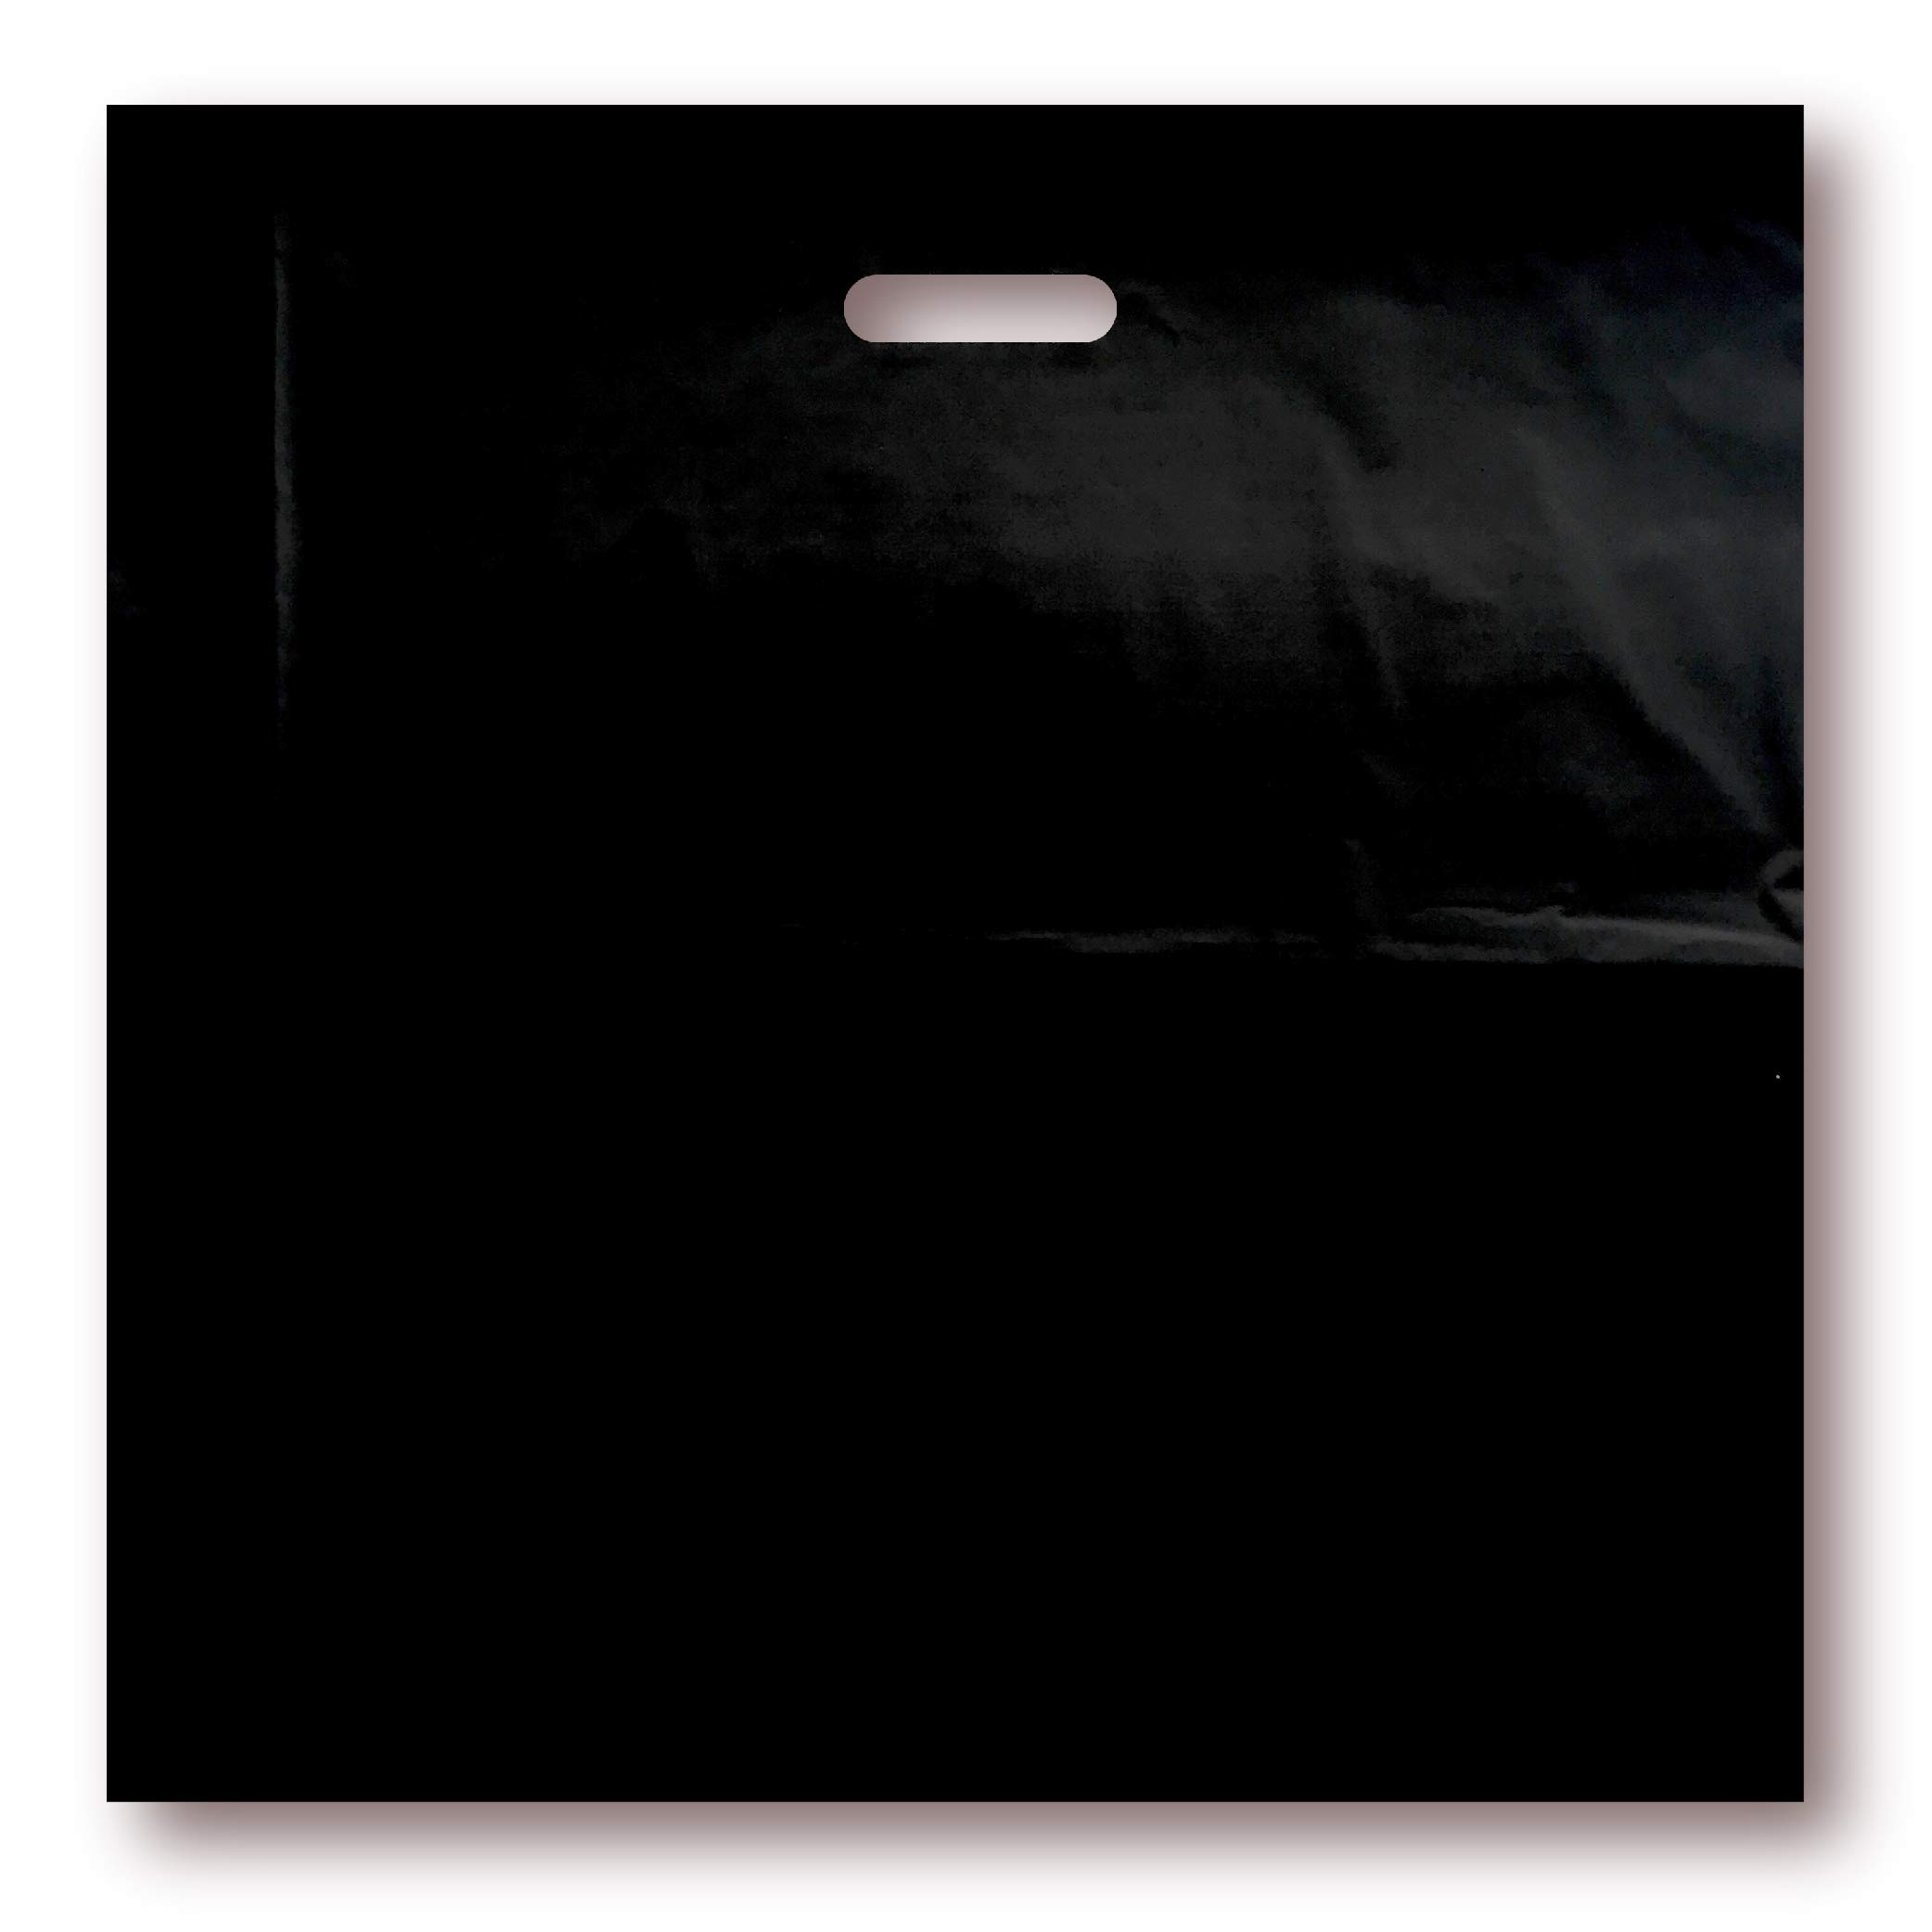 100 Pack 20'' x 20'' with 2 mil Thick Extra Large Black Merchandise Plastic Glossy Retail Bags | Die Cut Handles | Perfect for Shopping, Large Packages, Children Toys | Color Black | 100% Recyclable